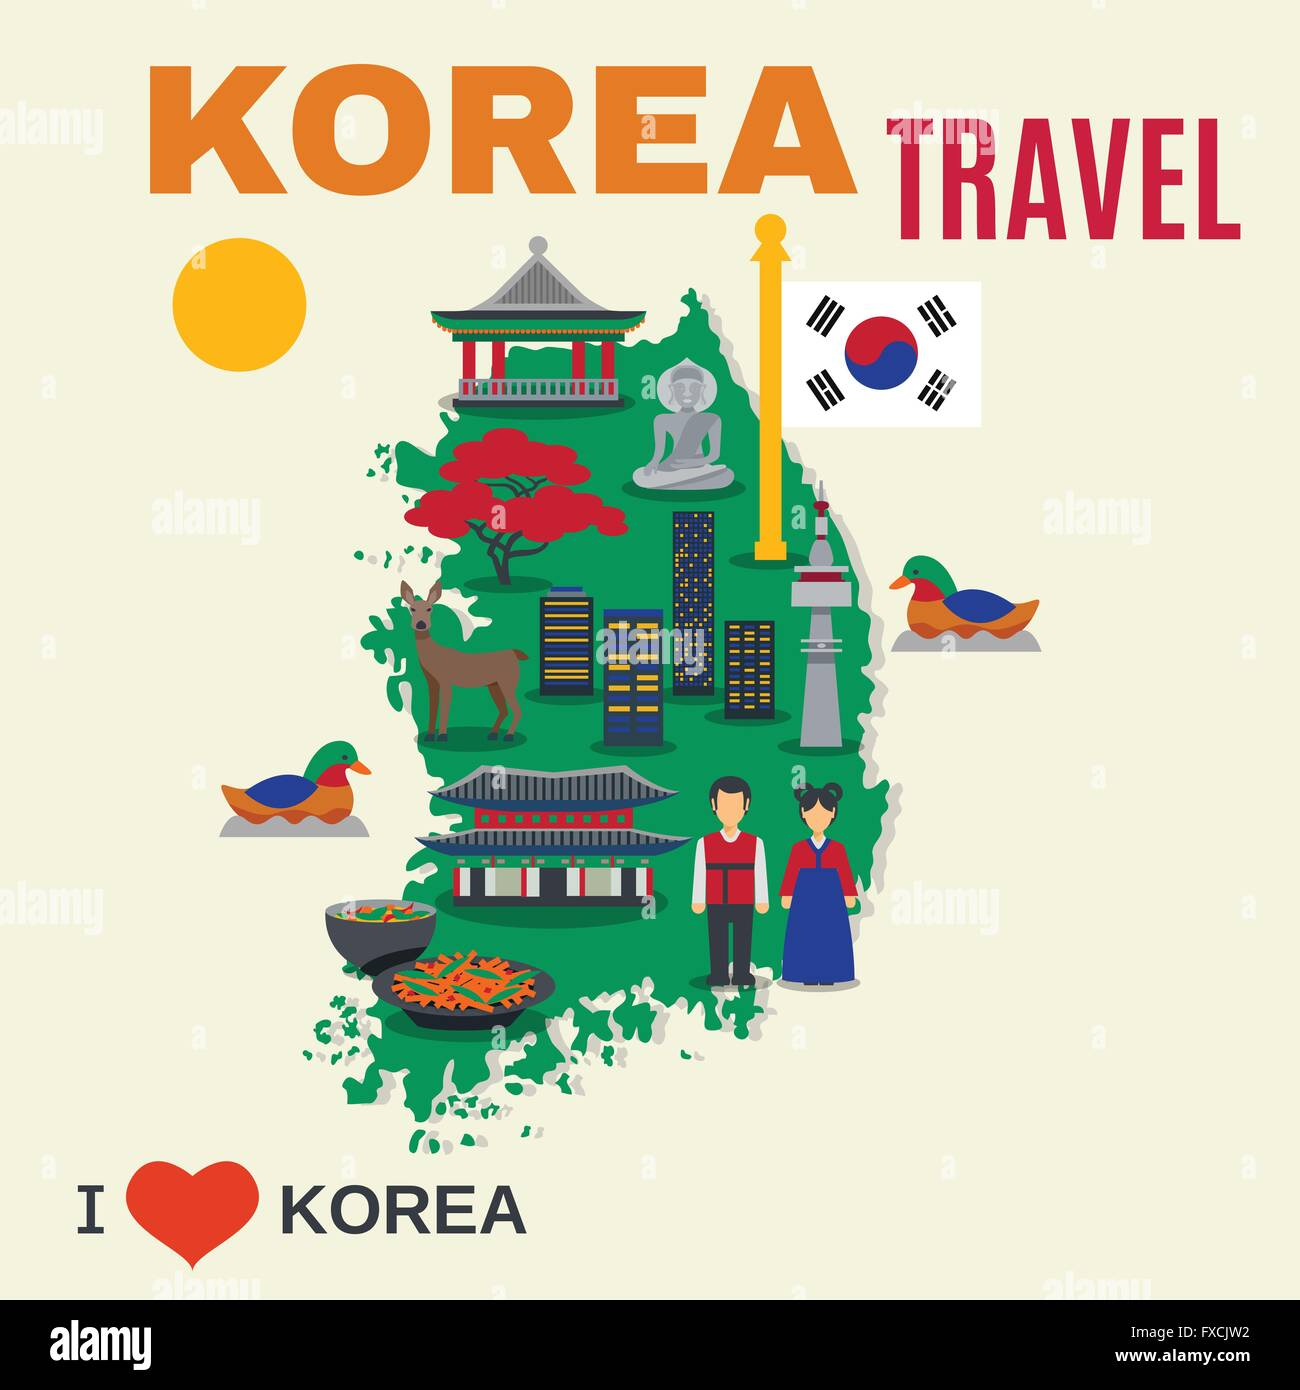 Korean culture symbols map travel poster stock vector art korean culture symbols map travel poster biocorpaavc Image collections